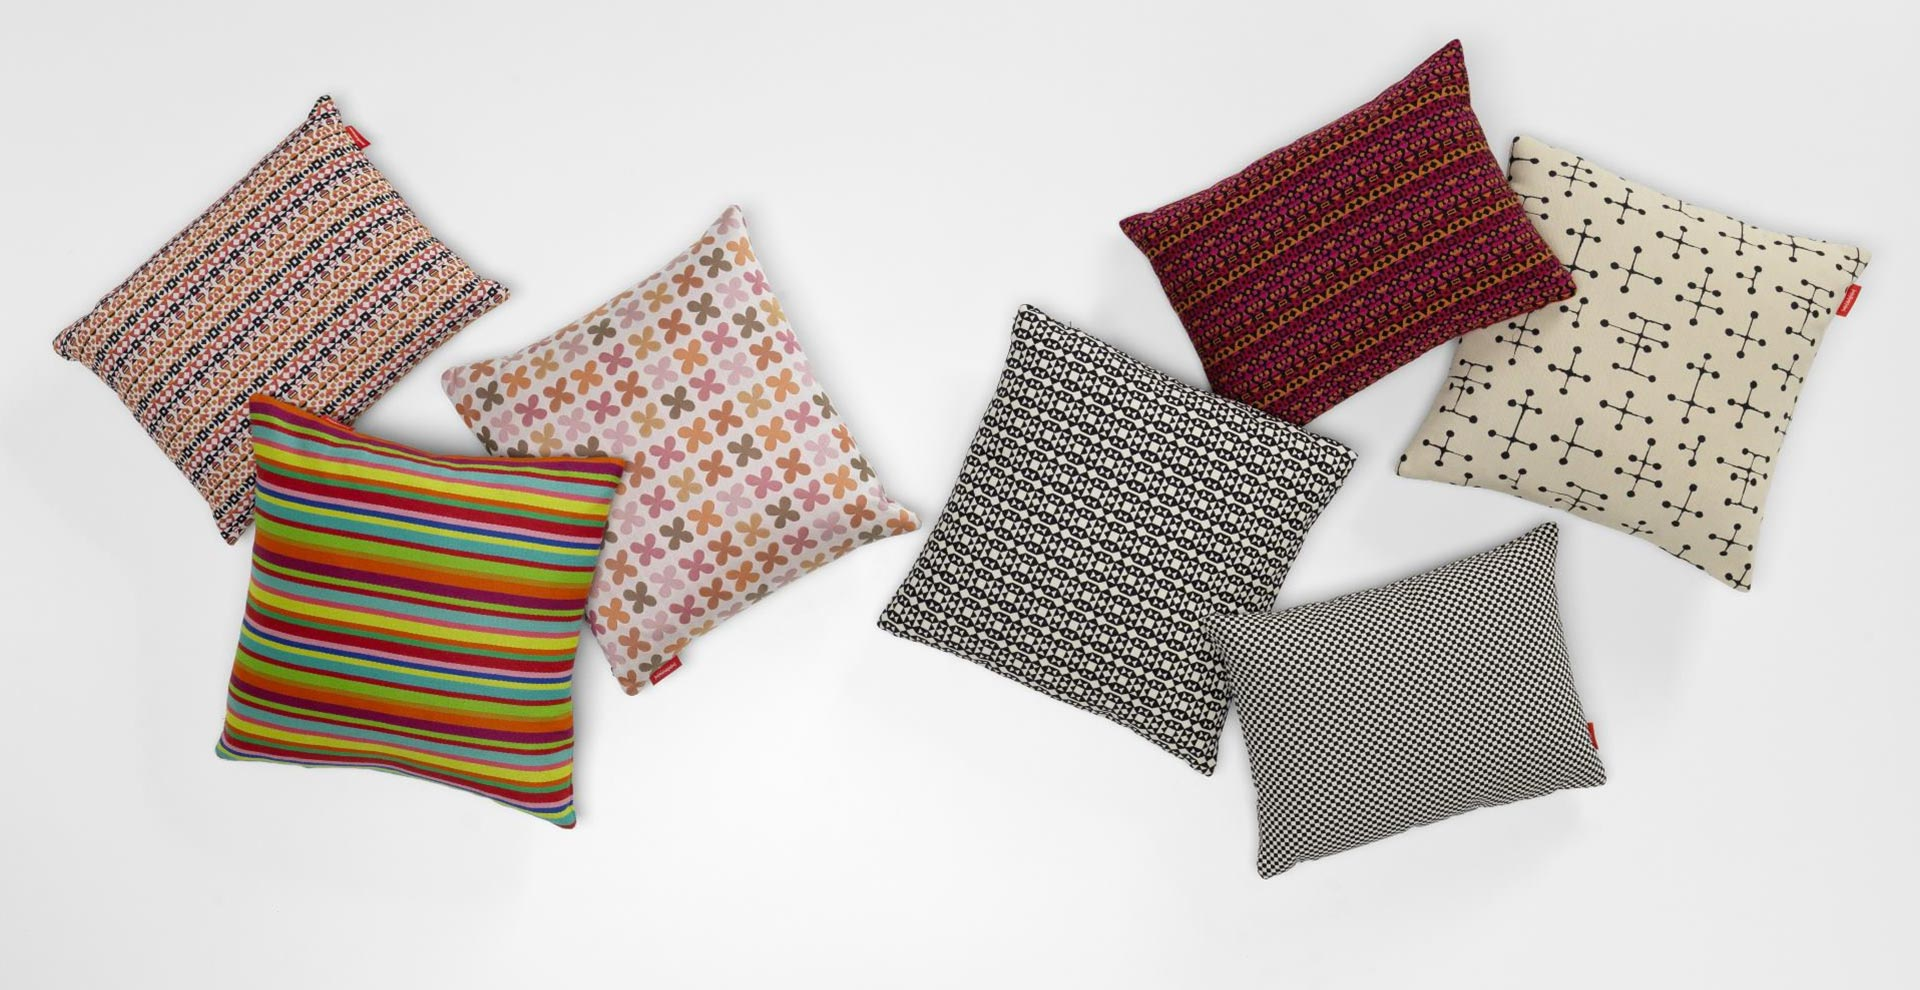 Graphic Print Pillows & Classic Maharam Pillows Vitra